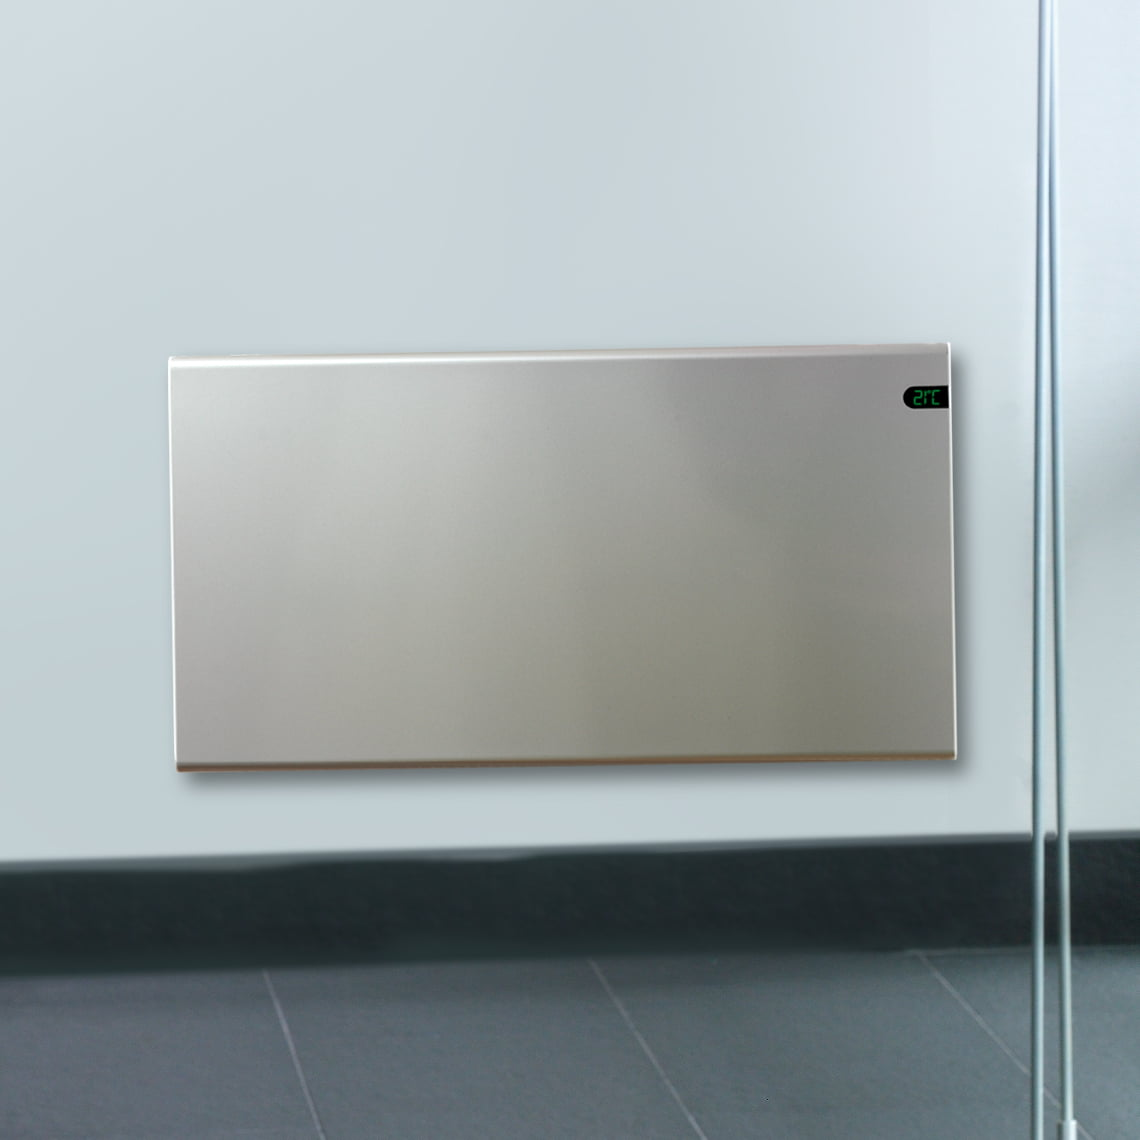 Adax Neo Stylish Modern Electric Wall Heater Convector